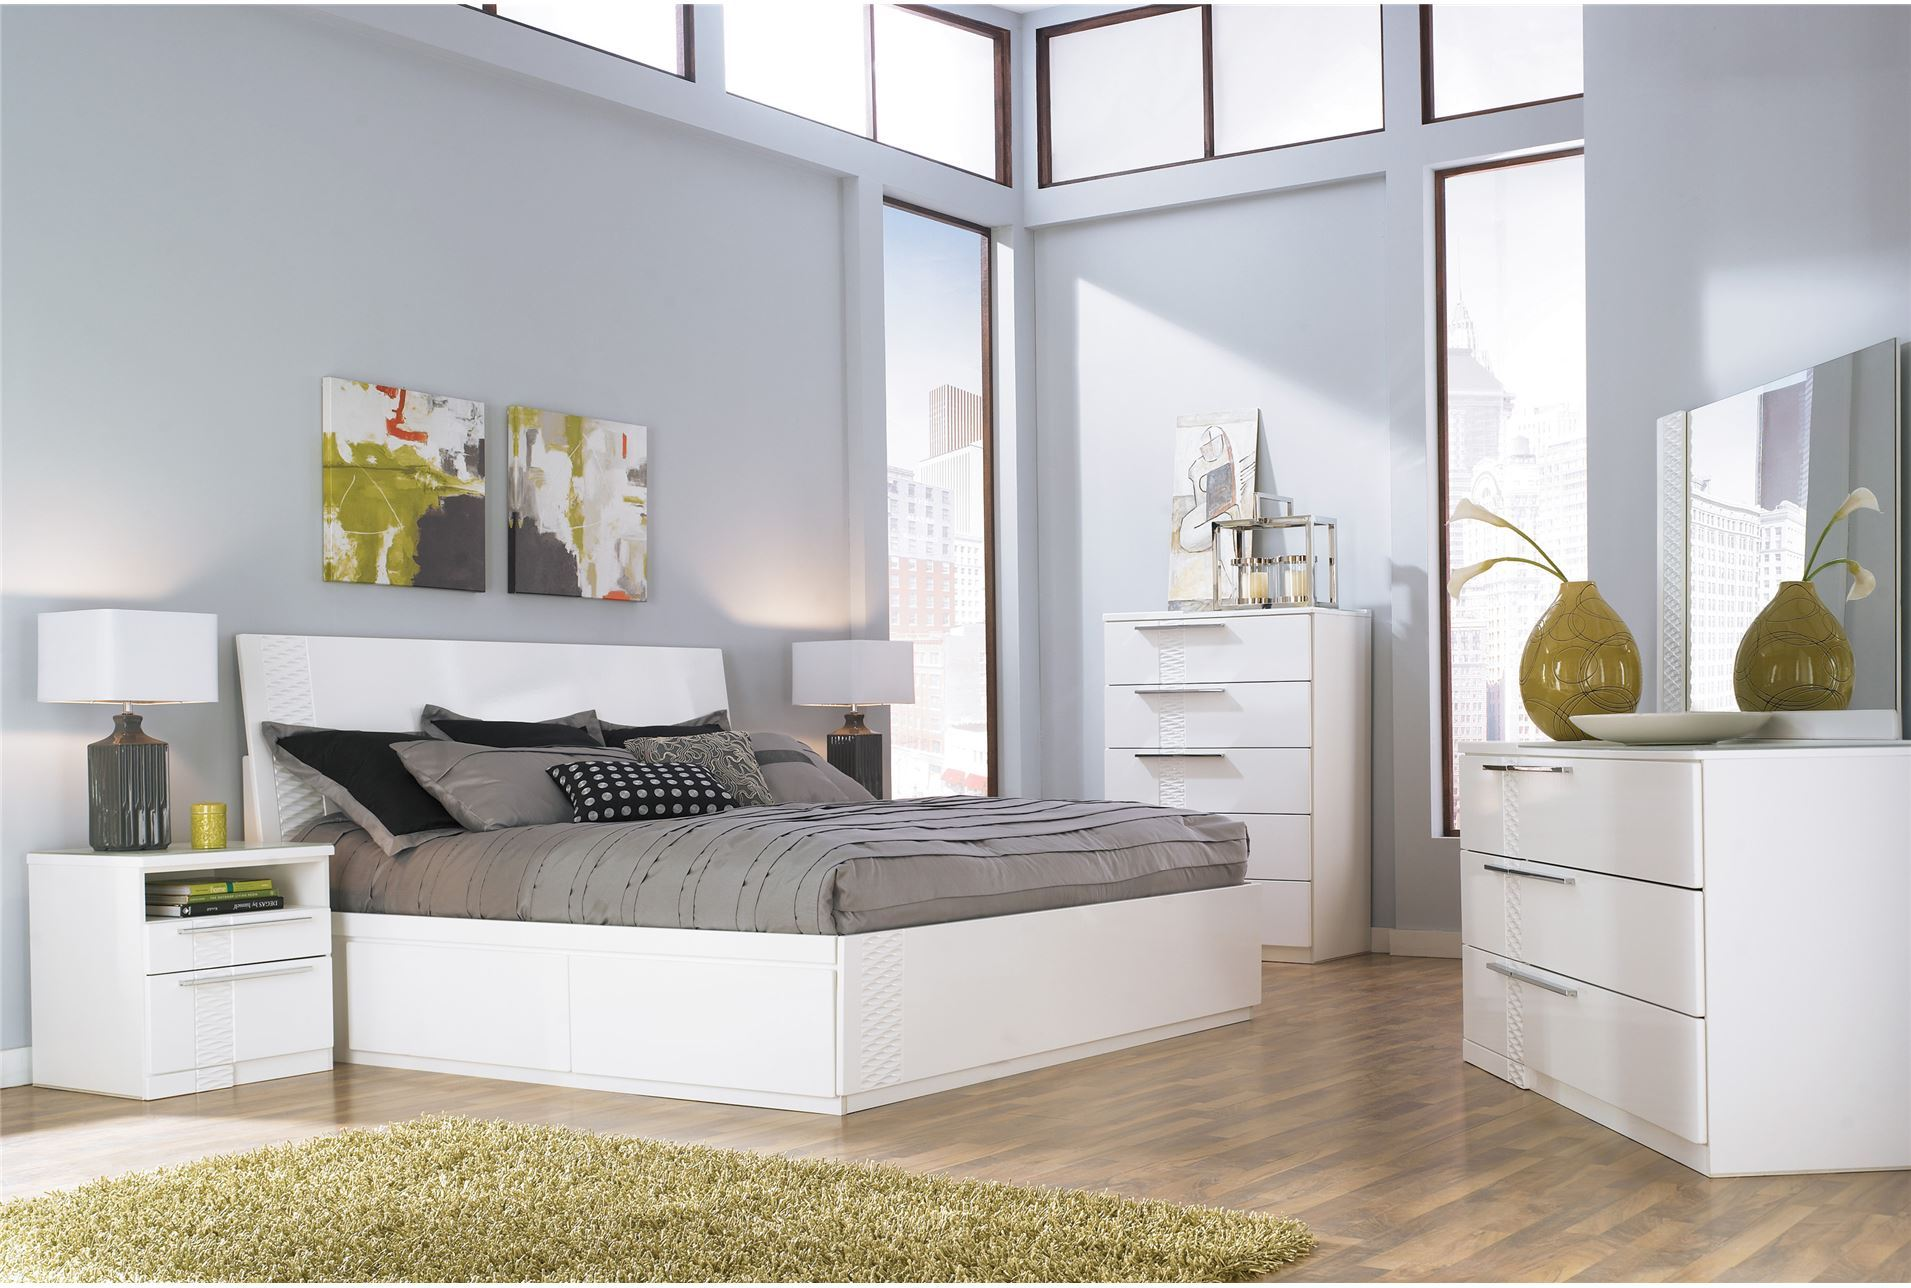 7 beautiful white queen size beds from us stores cute for White bedroom set with storage